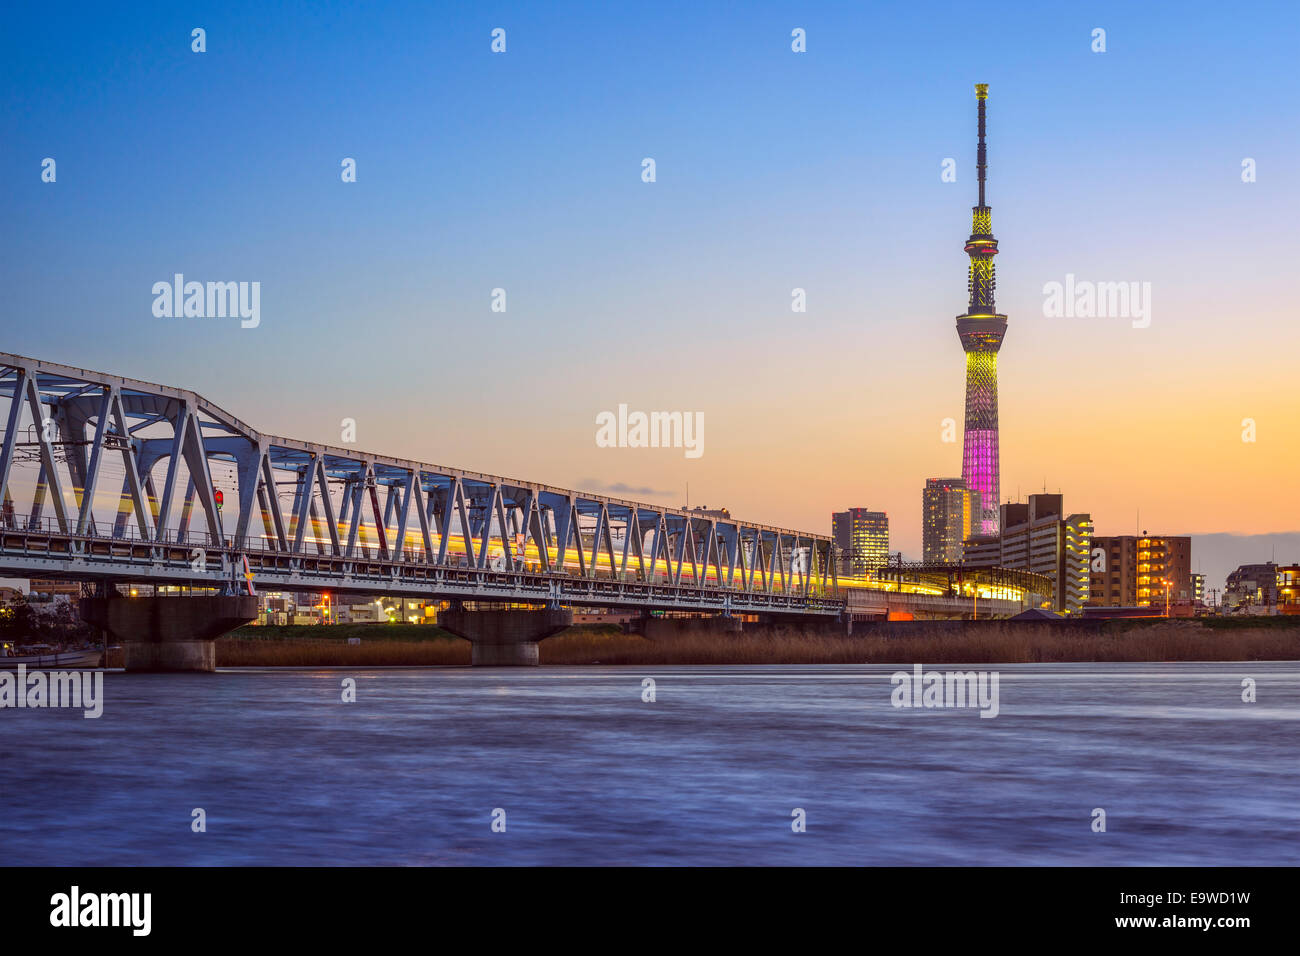 Tokyo, Japan river skyline and Tower. - Stock Image